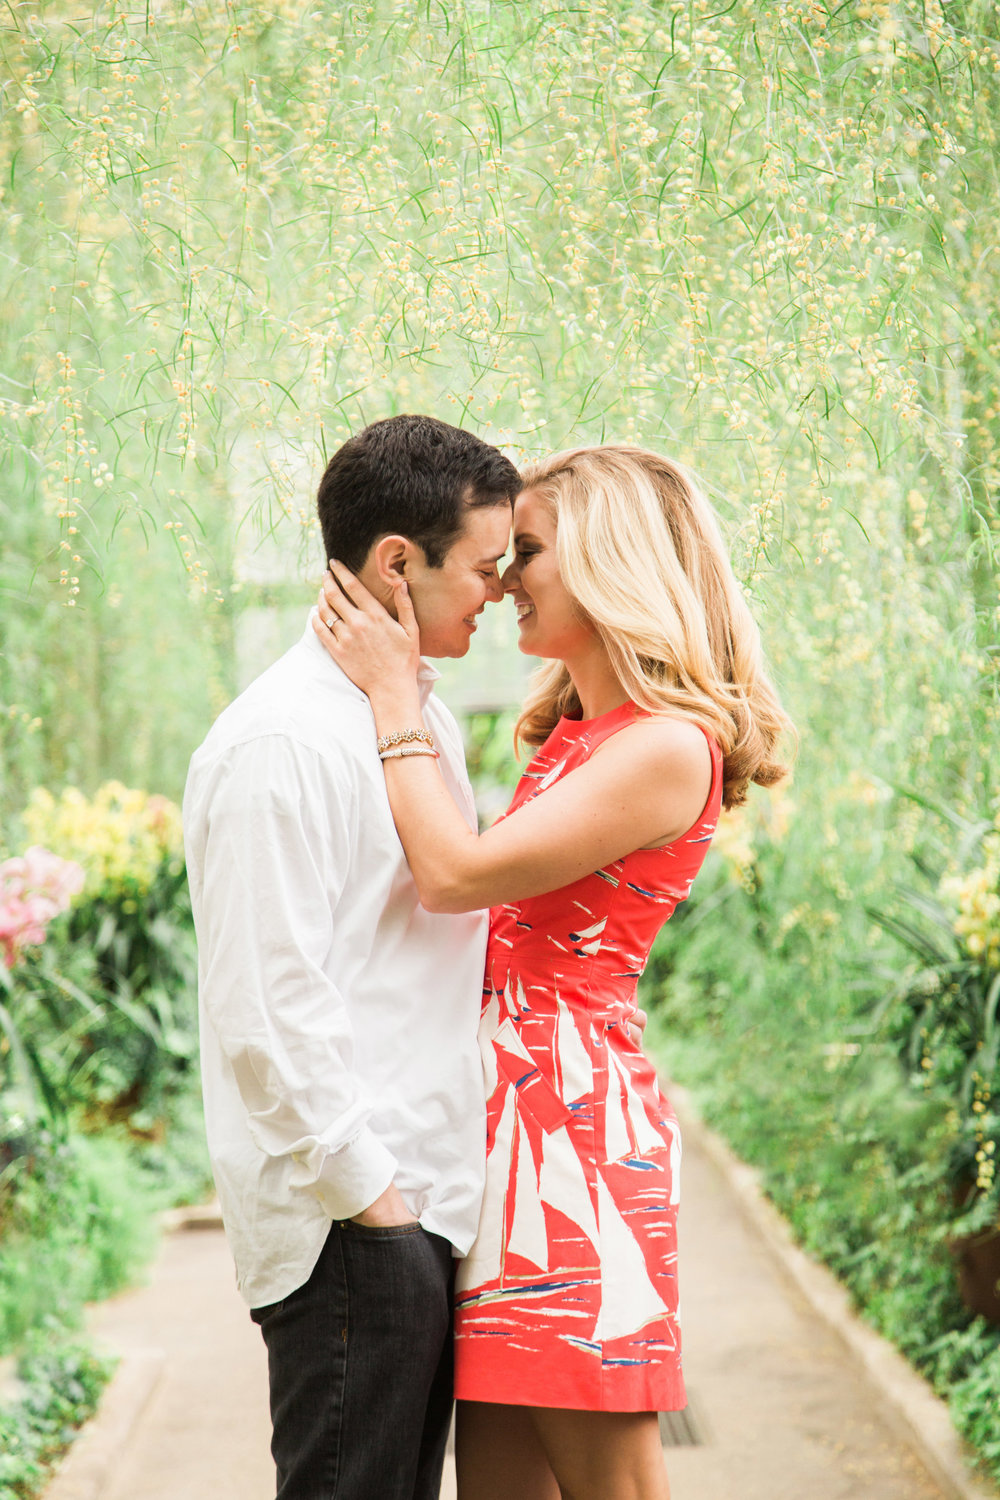 HNP-Chelsea-Jason-Longwood-Gardens-Spring-Engagement-Photos_092.jpg